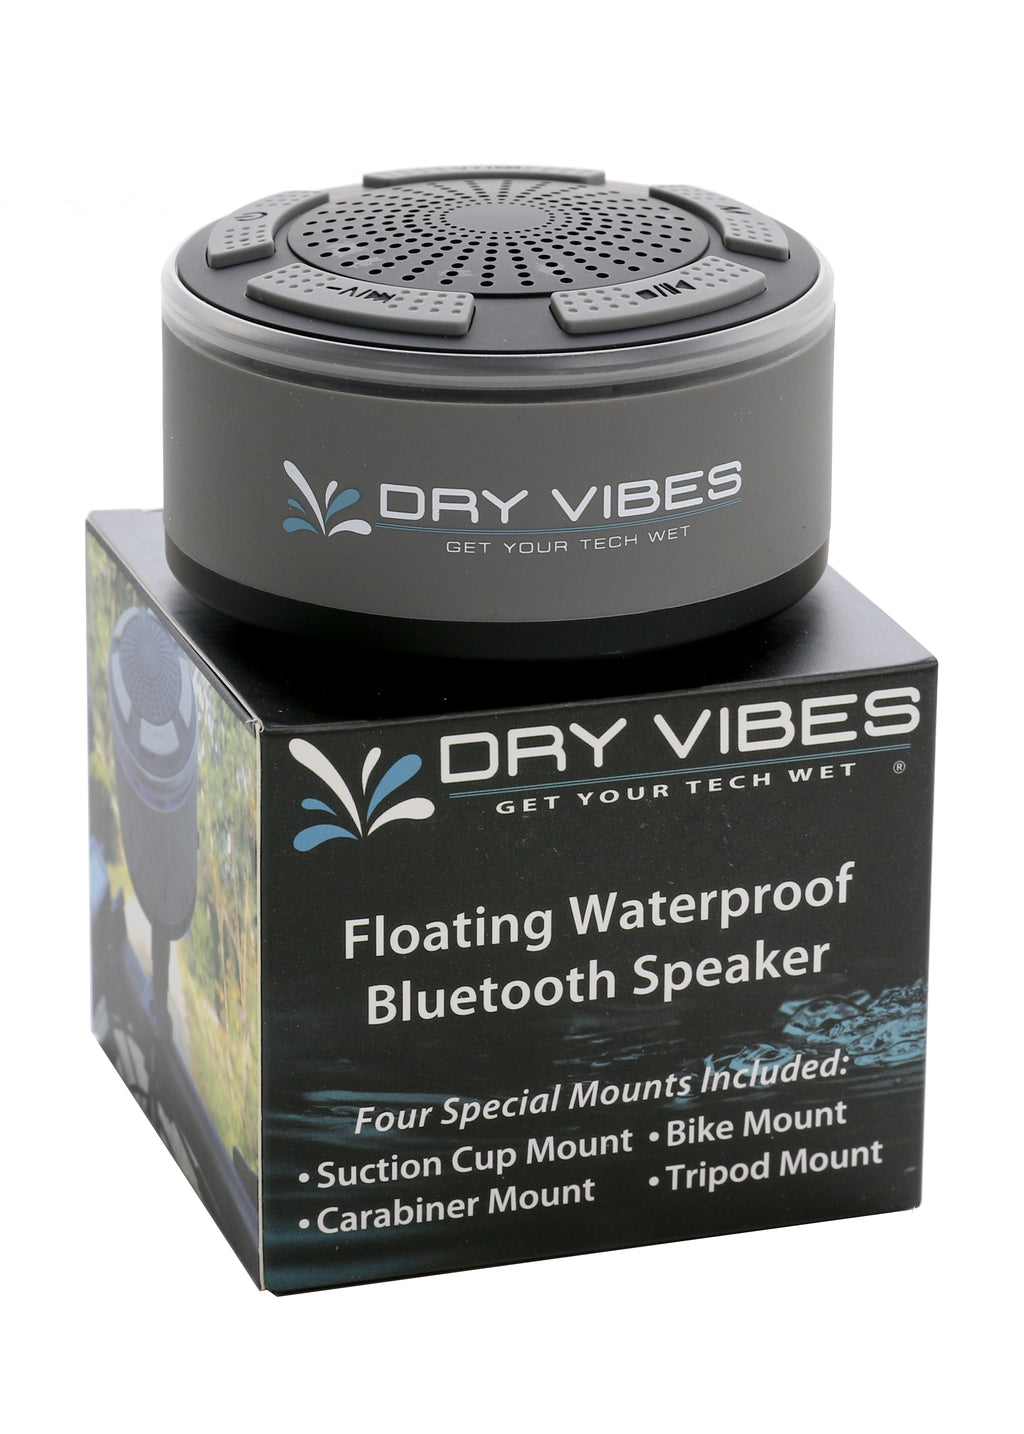 DryVibes 2.0 Waterproof Floating Bluetooth Speaker